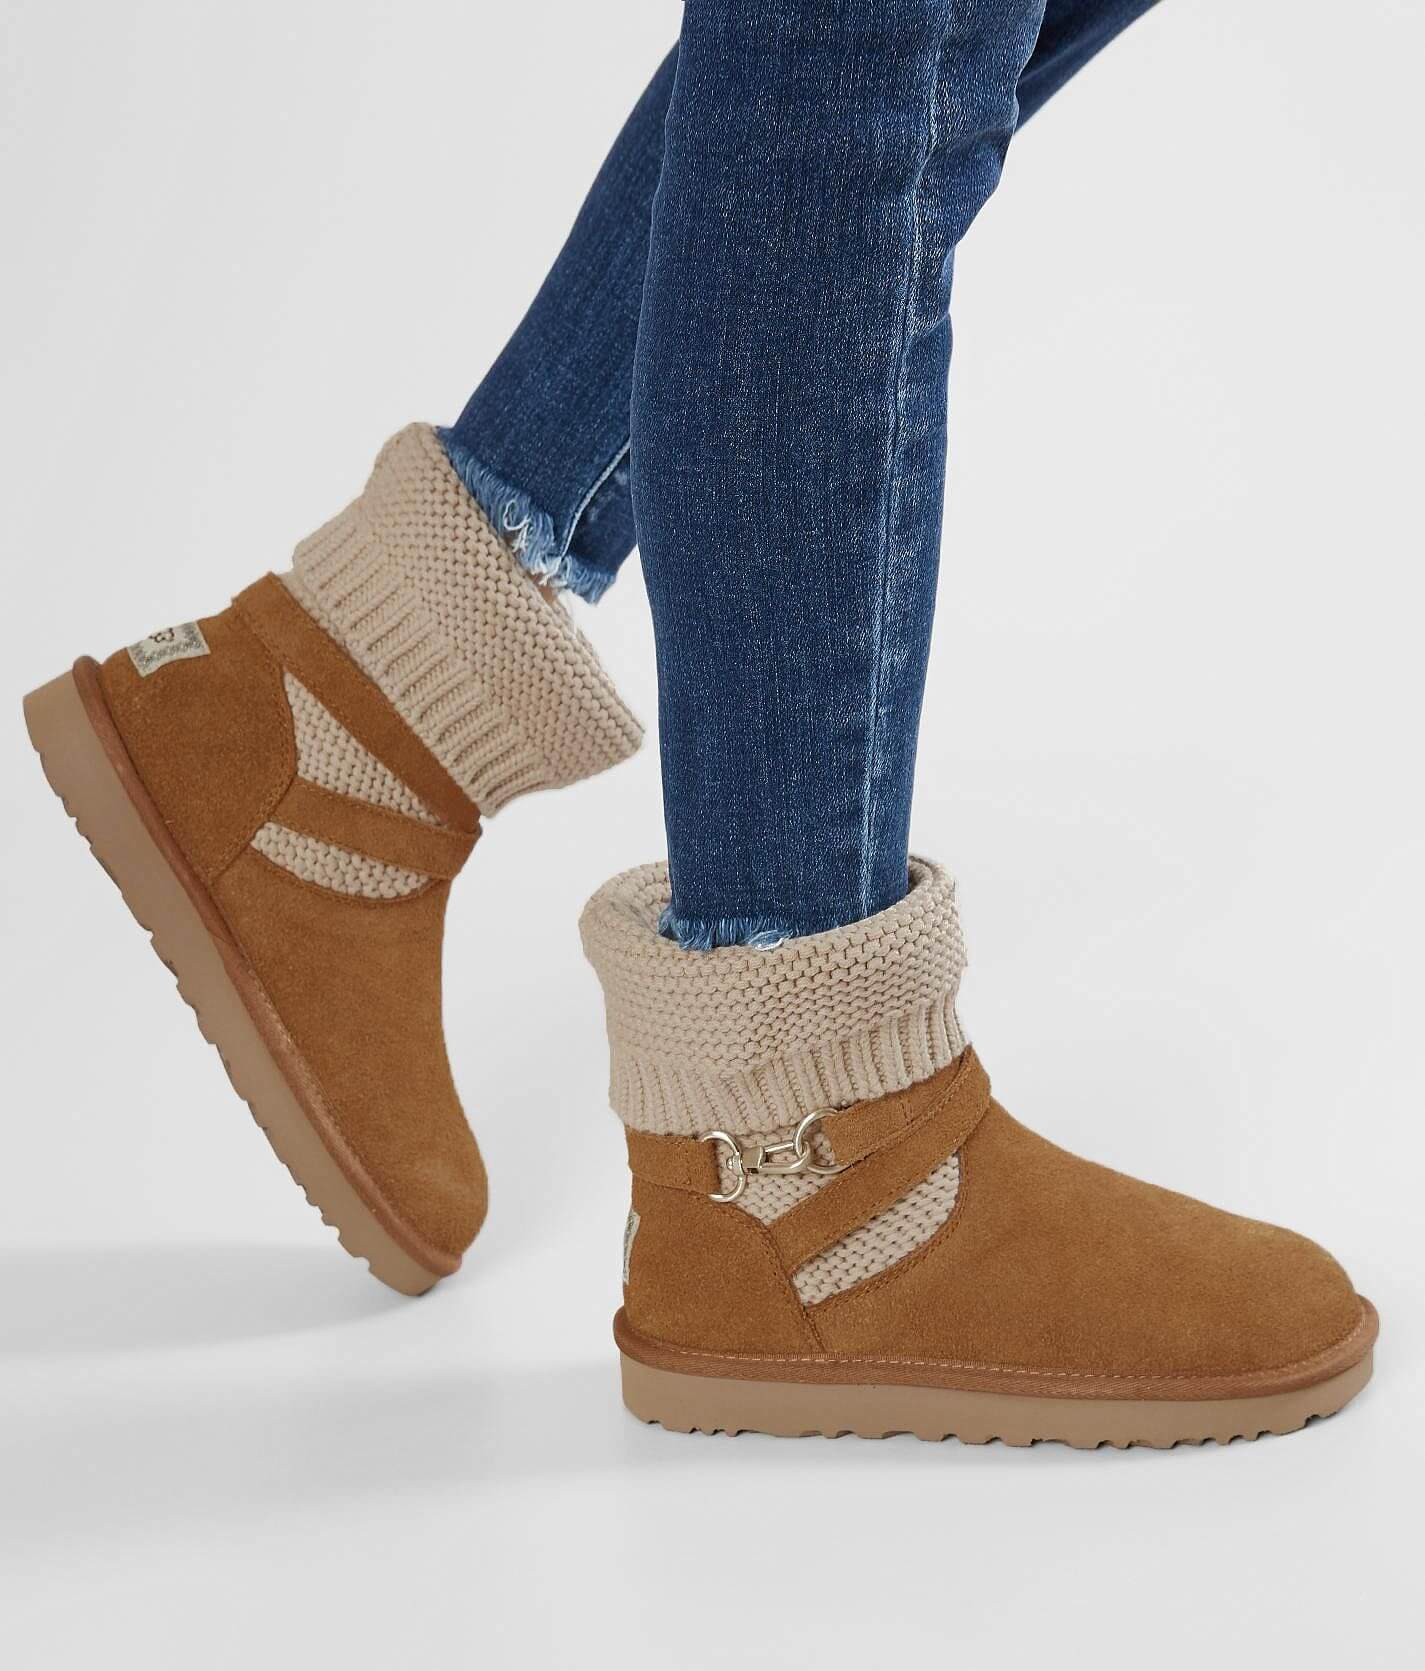 Womens Ugg Boots Shoes Buckle